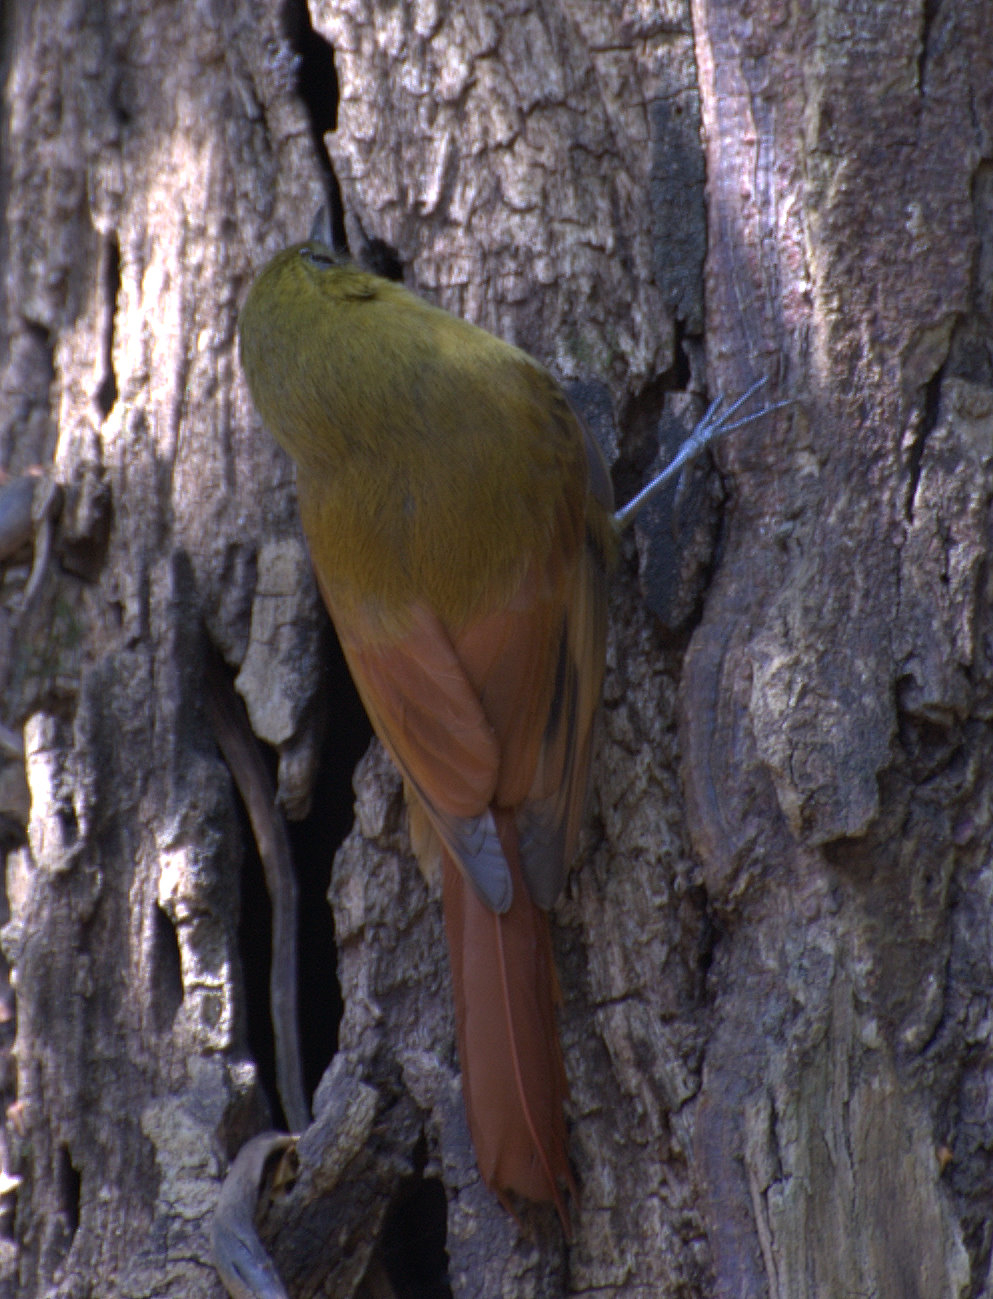 Olivaceous Woodcreeper wallpaper